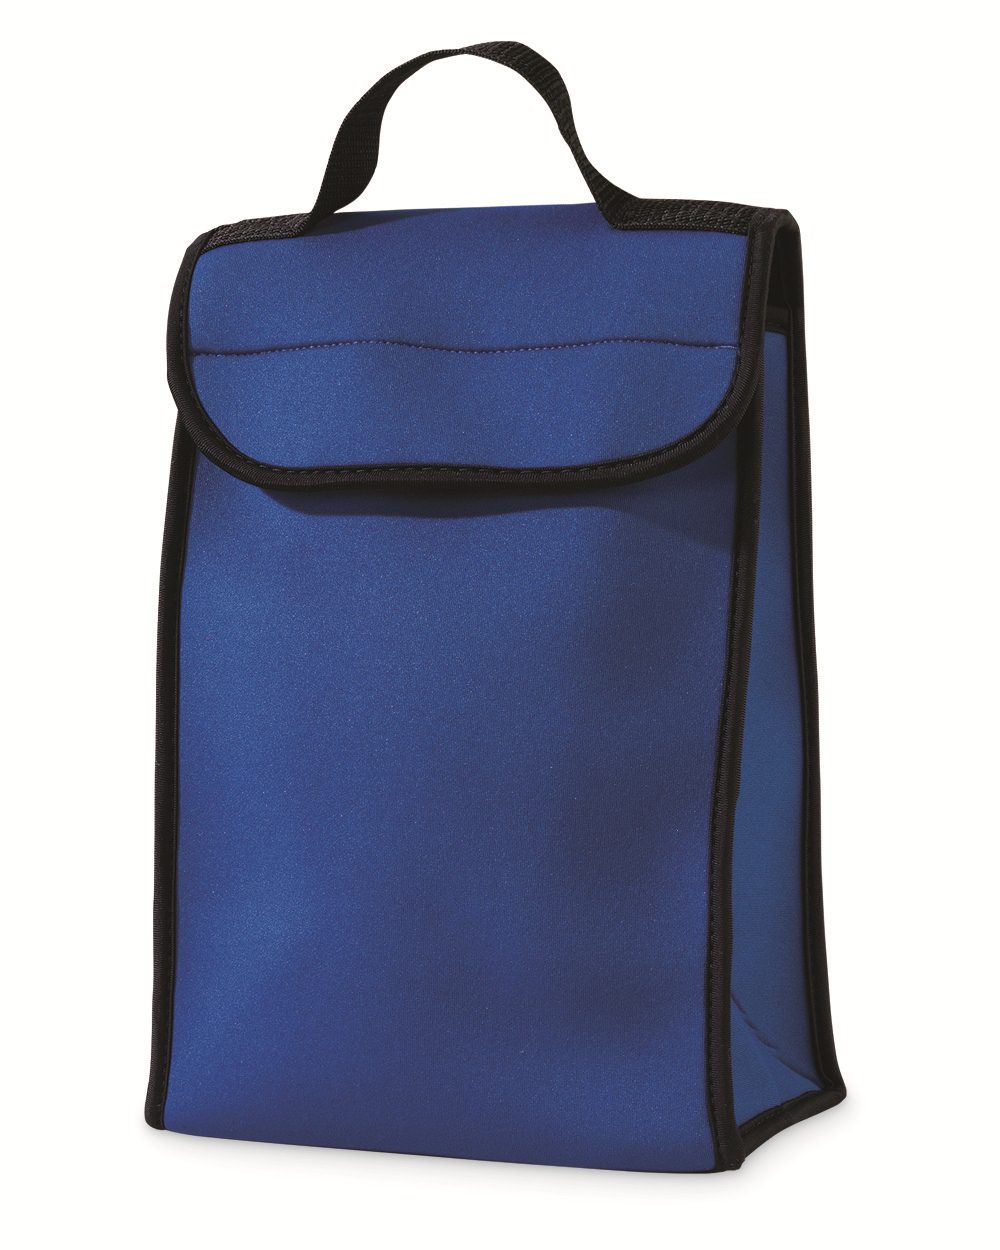 Valubag Neoprene Lunch Bag - VB1009